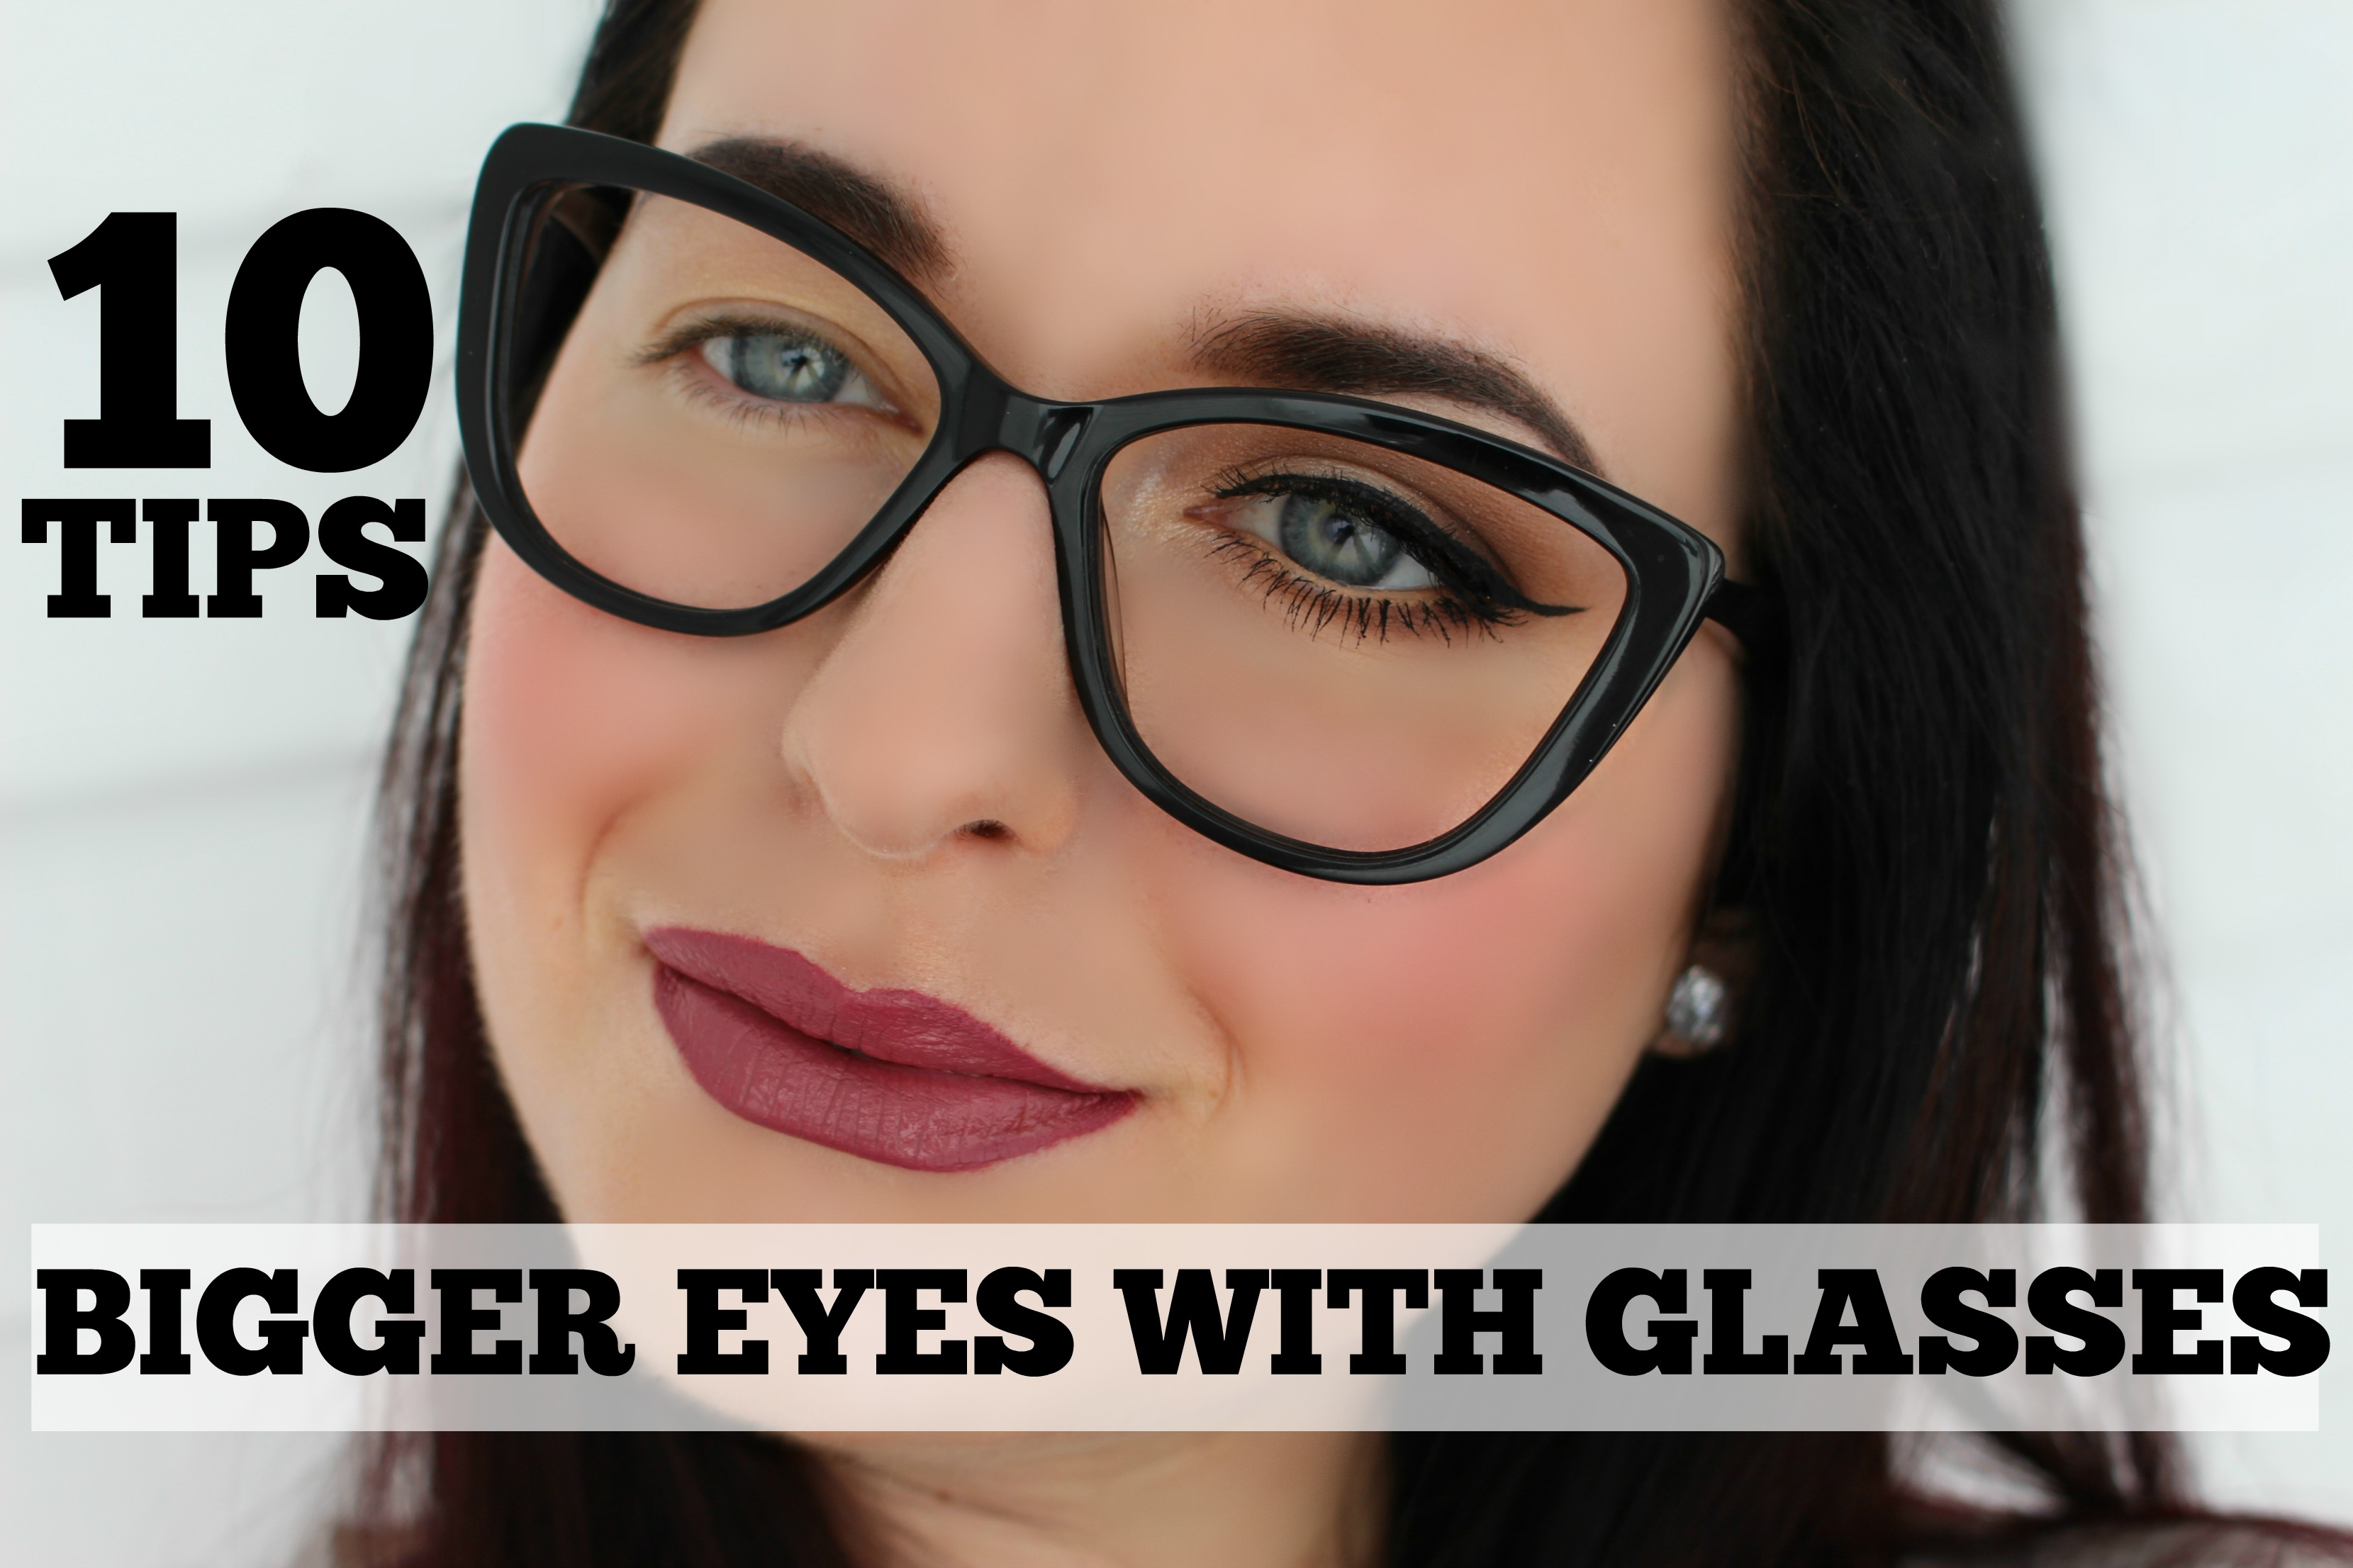 Glasses Frames To Make Eyes Look Bigger : 10 Tips for BIGGER Eyes Behind Glasses (Video)